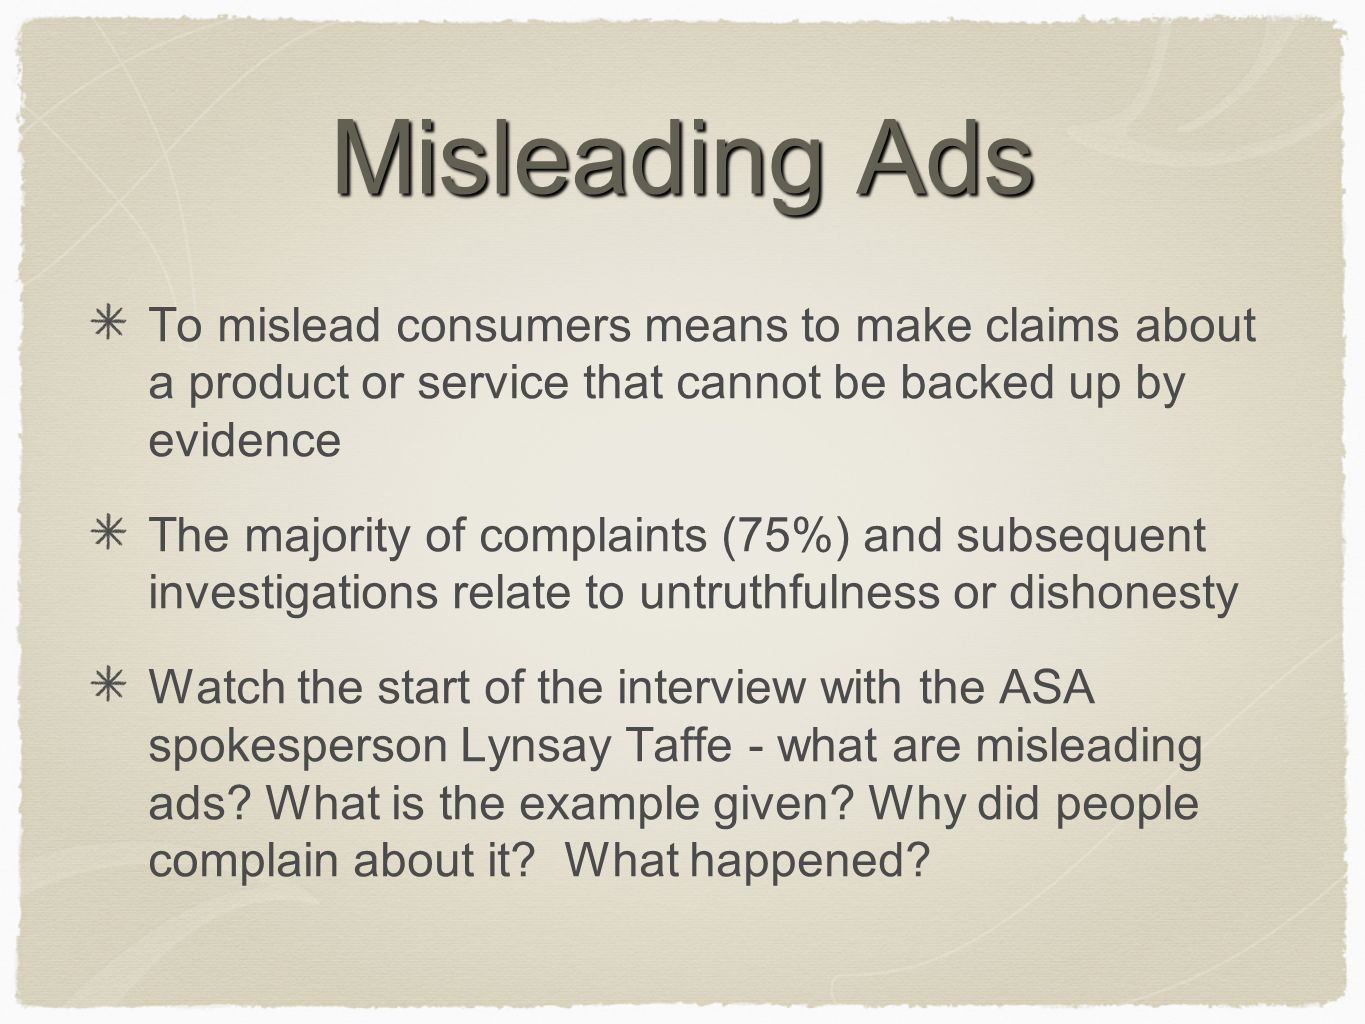 regulation regulating advertising in the uk the asa ppt misleading ads to mislead consumers means to make claims about a product or service that cannot